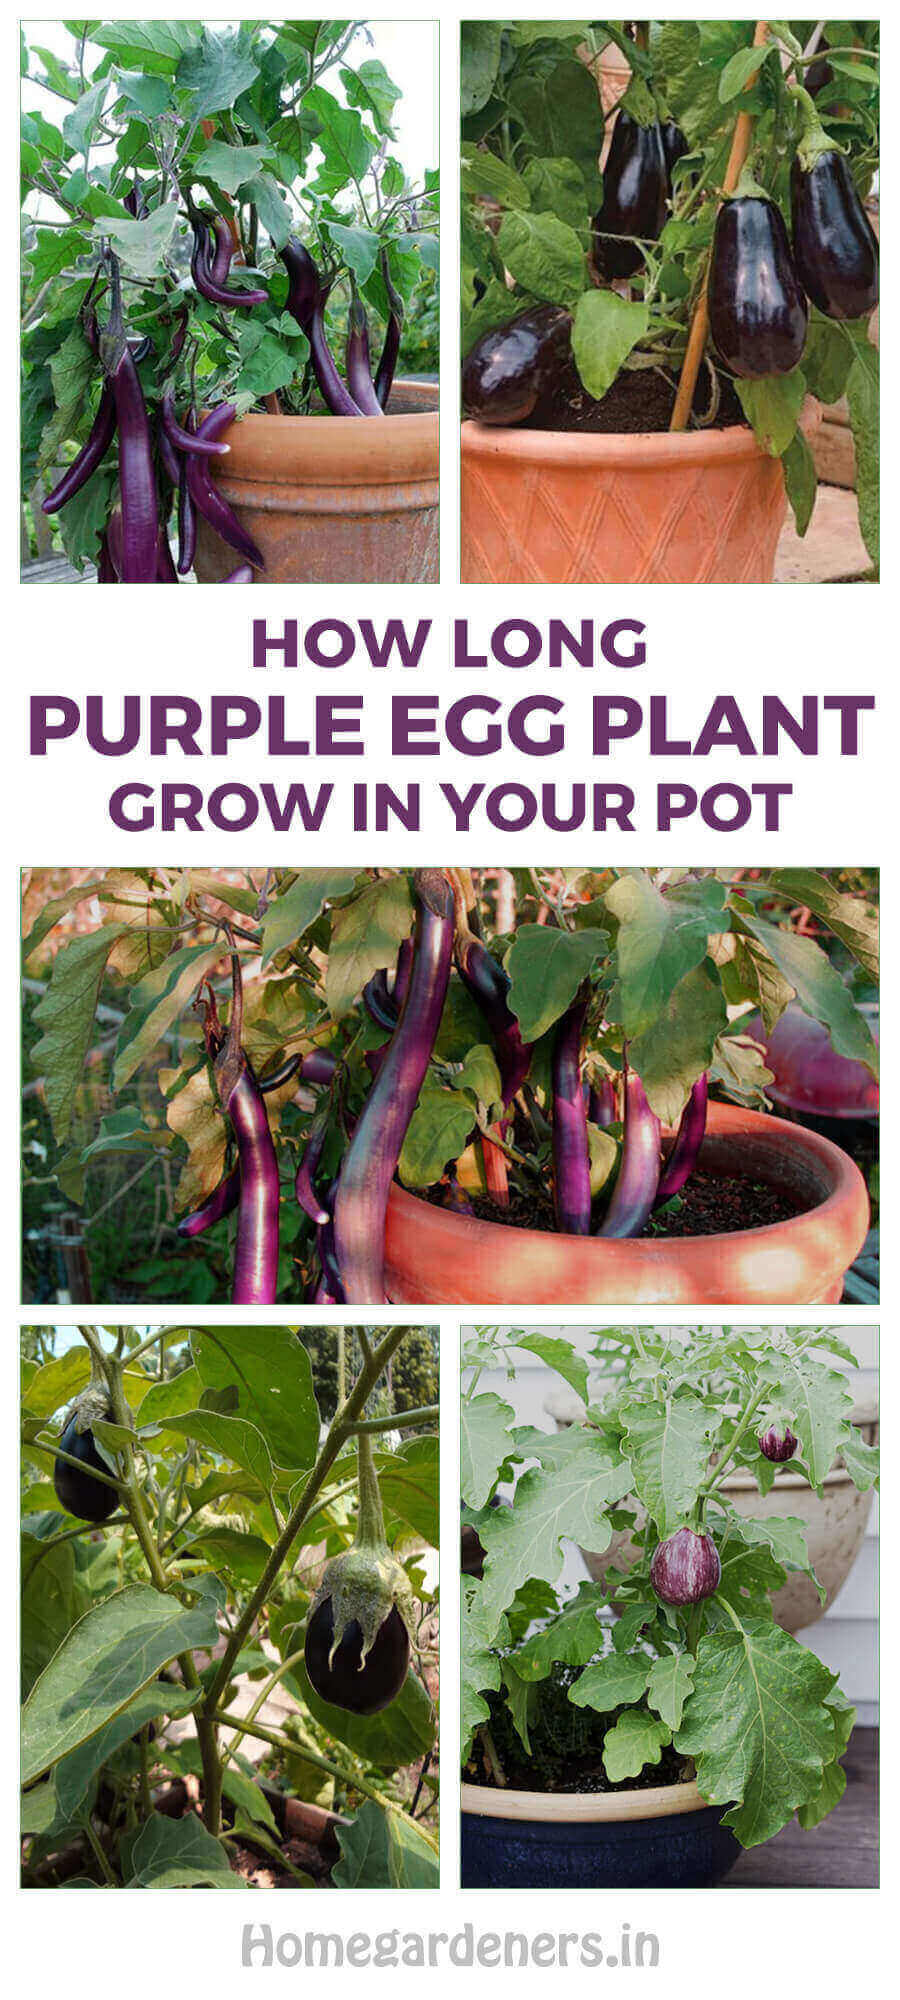 How Long Does Purple Eggplant Grow in Your Pot